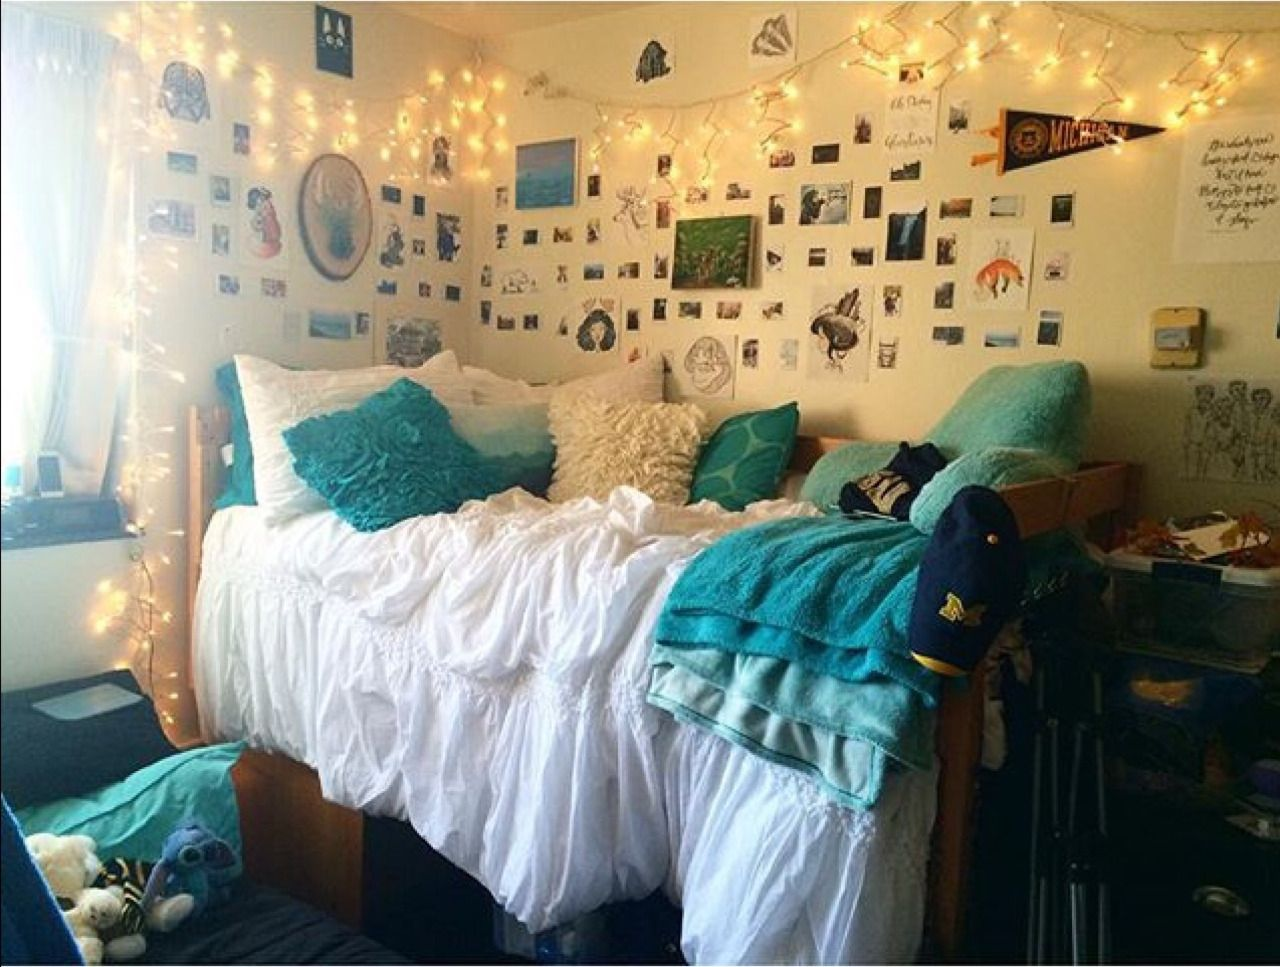 Cool dorm rooms university of michigan south quadrangle for Cool college bedrooms